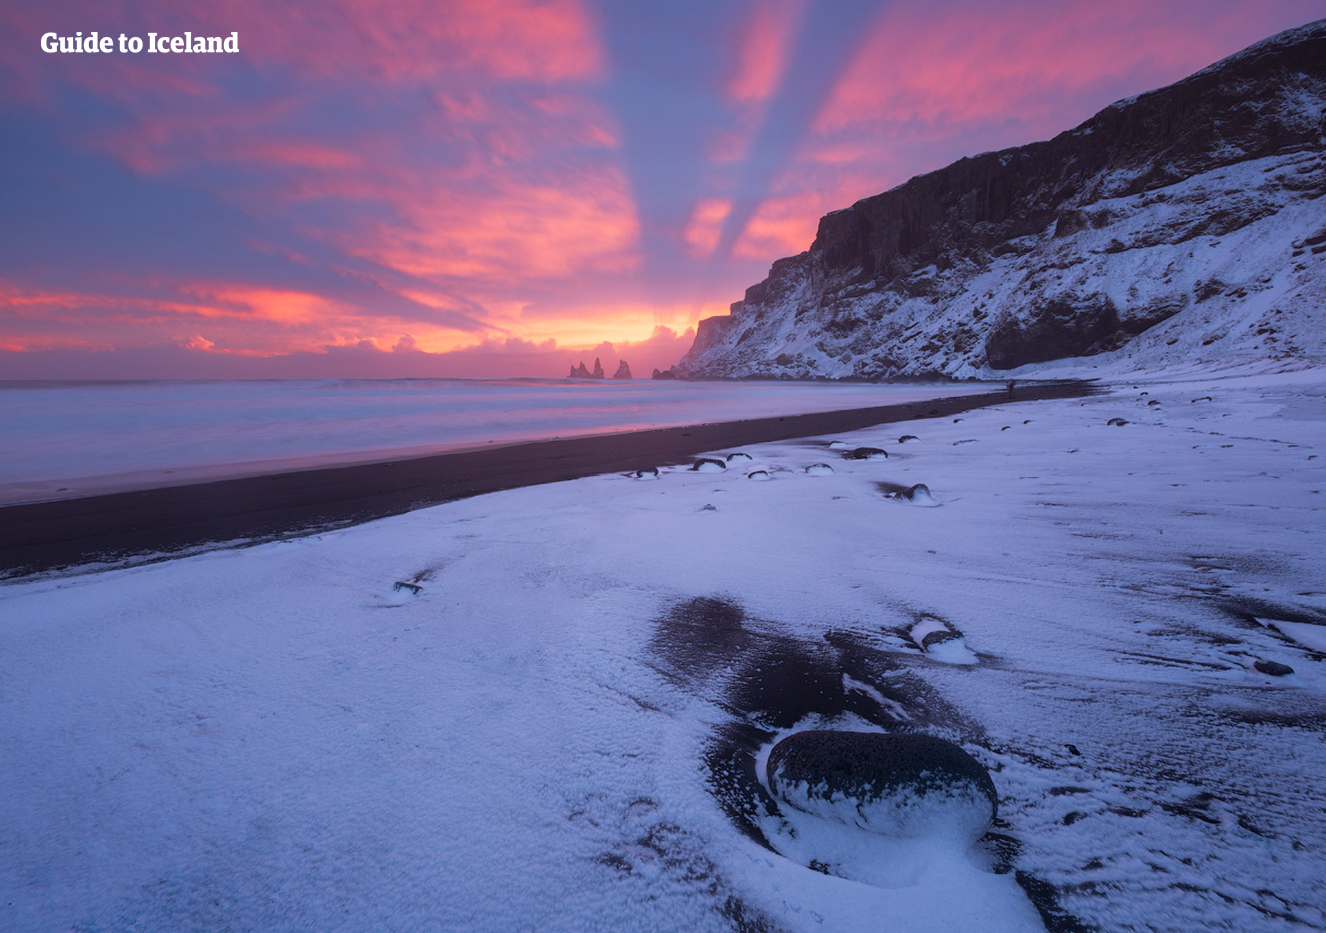 Reynisfjara beach is a notorious location, particularly in the winter months, due to its violent sneaker waves which can crash upon the shore even on still days.